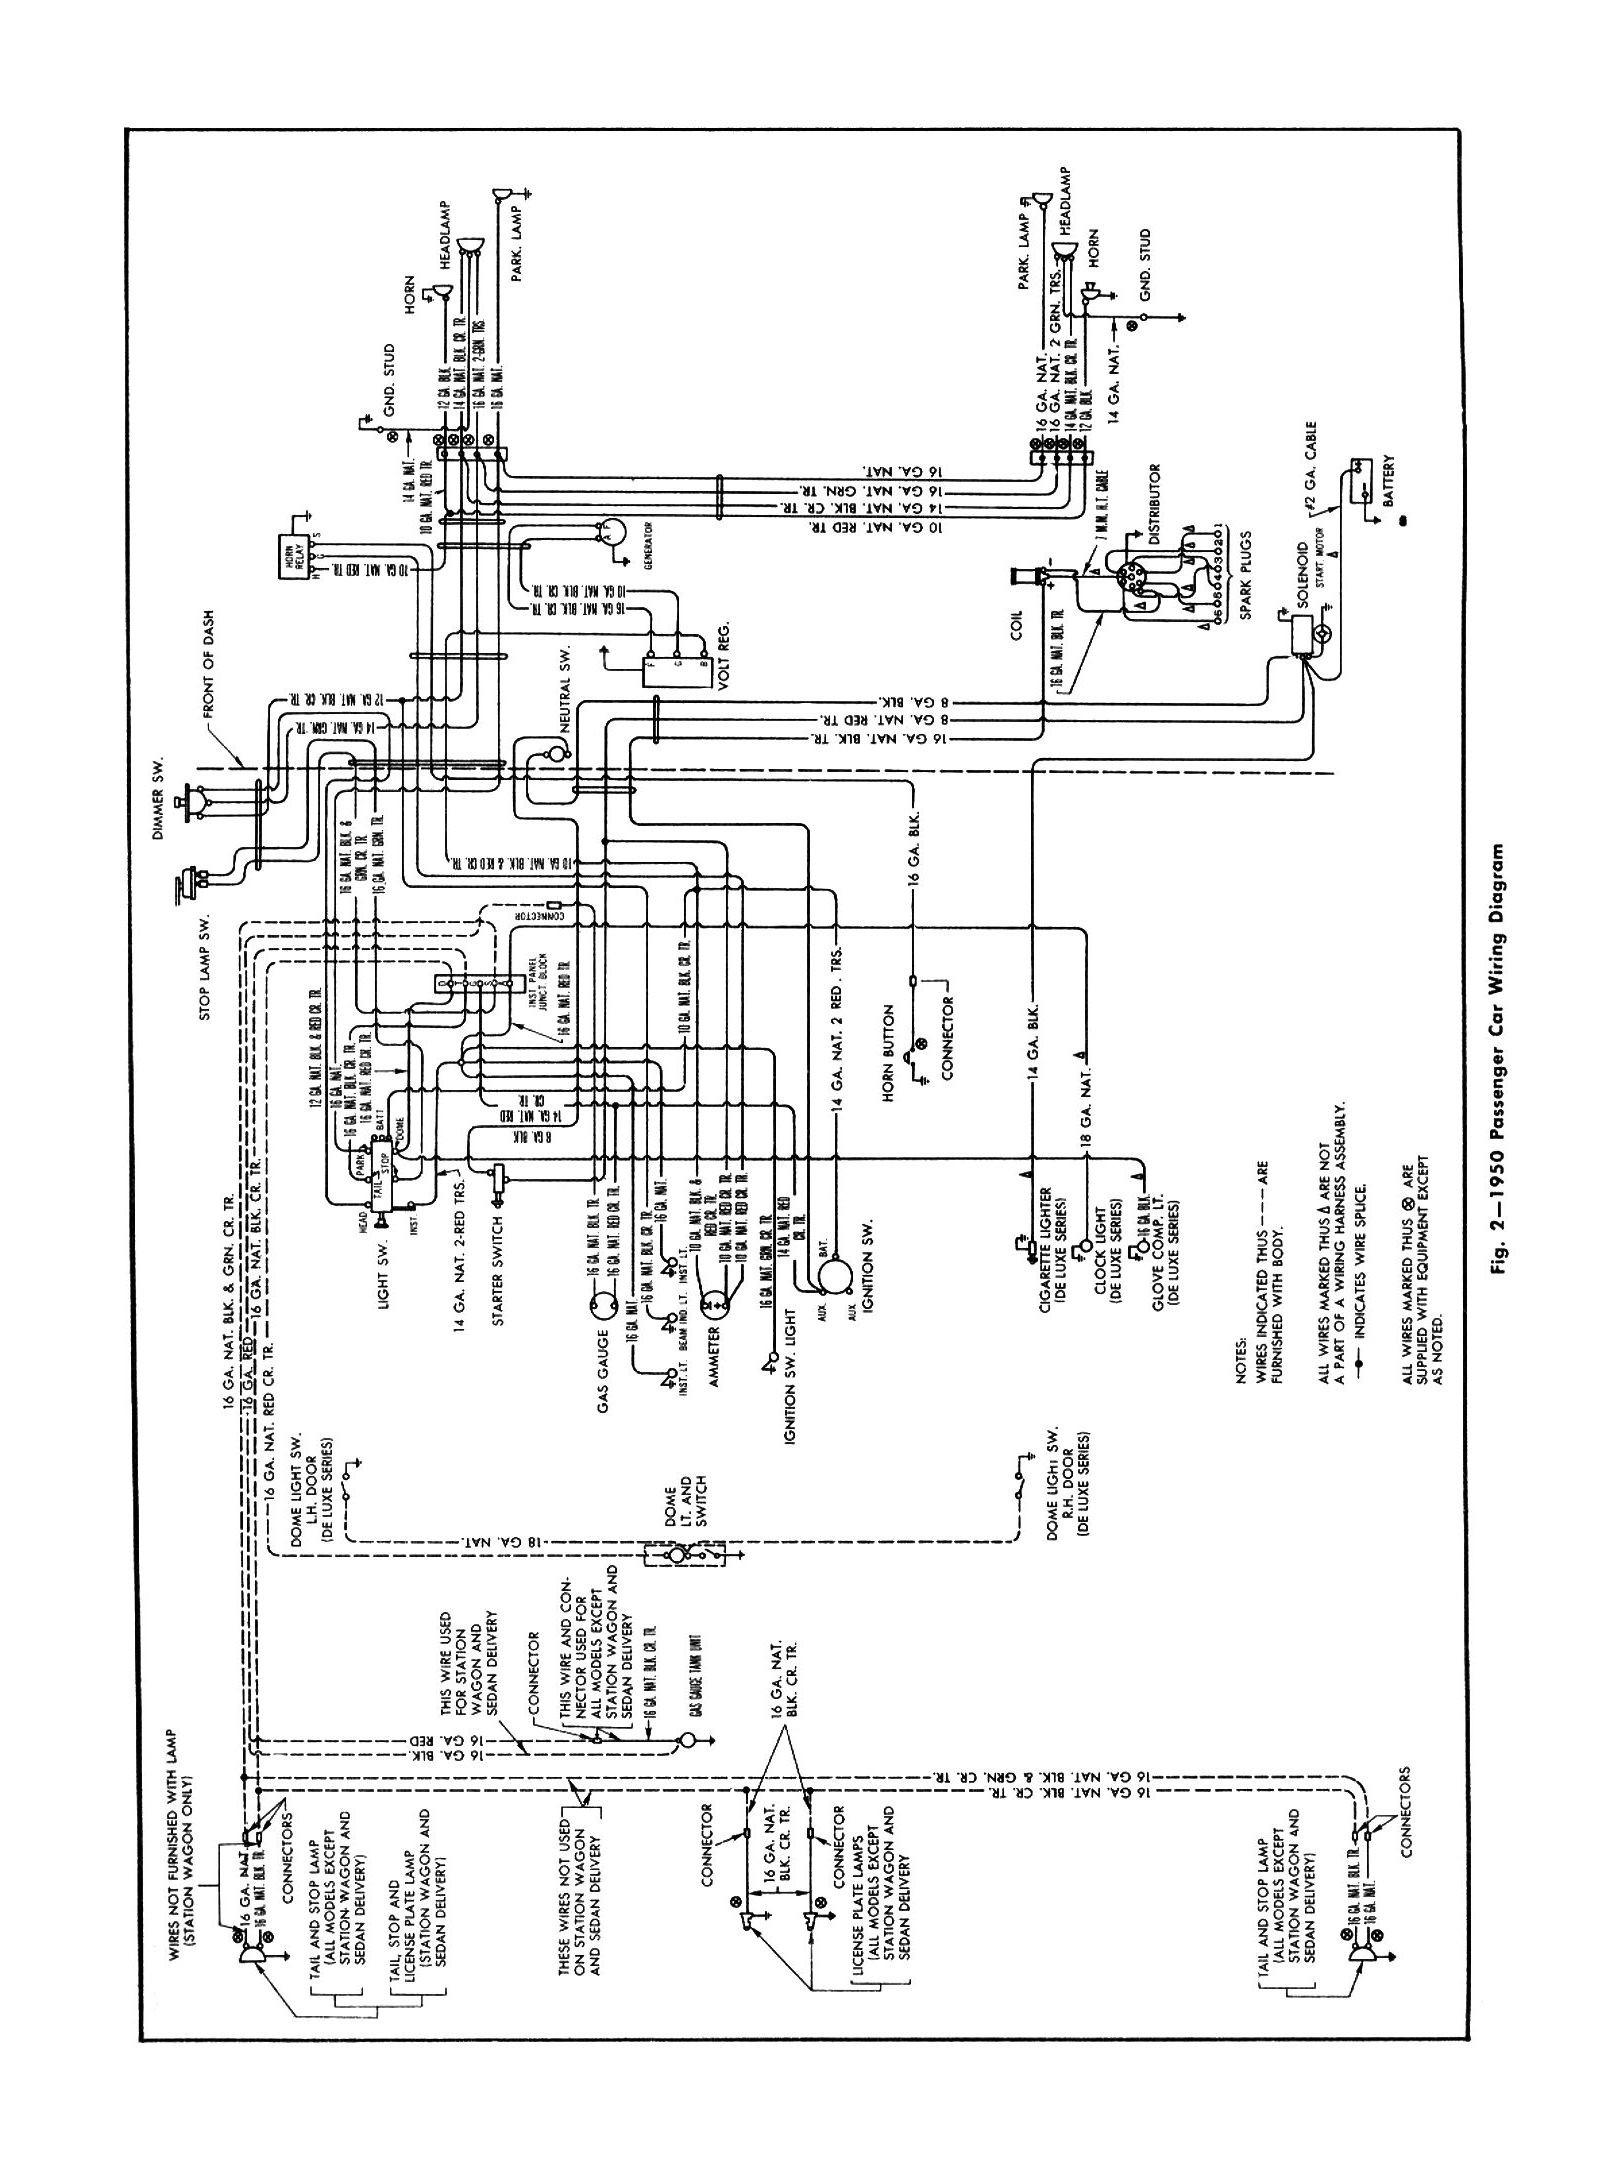 Full Wiring Diagram 1949 Reinvent Your 1947 Ford Coupe Chevy Online Schematics Rh Delvato Co 3 Way Switch